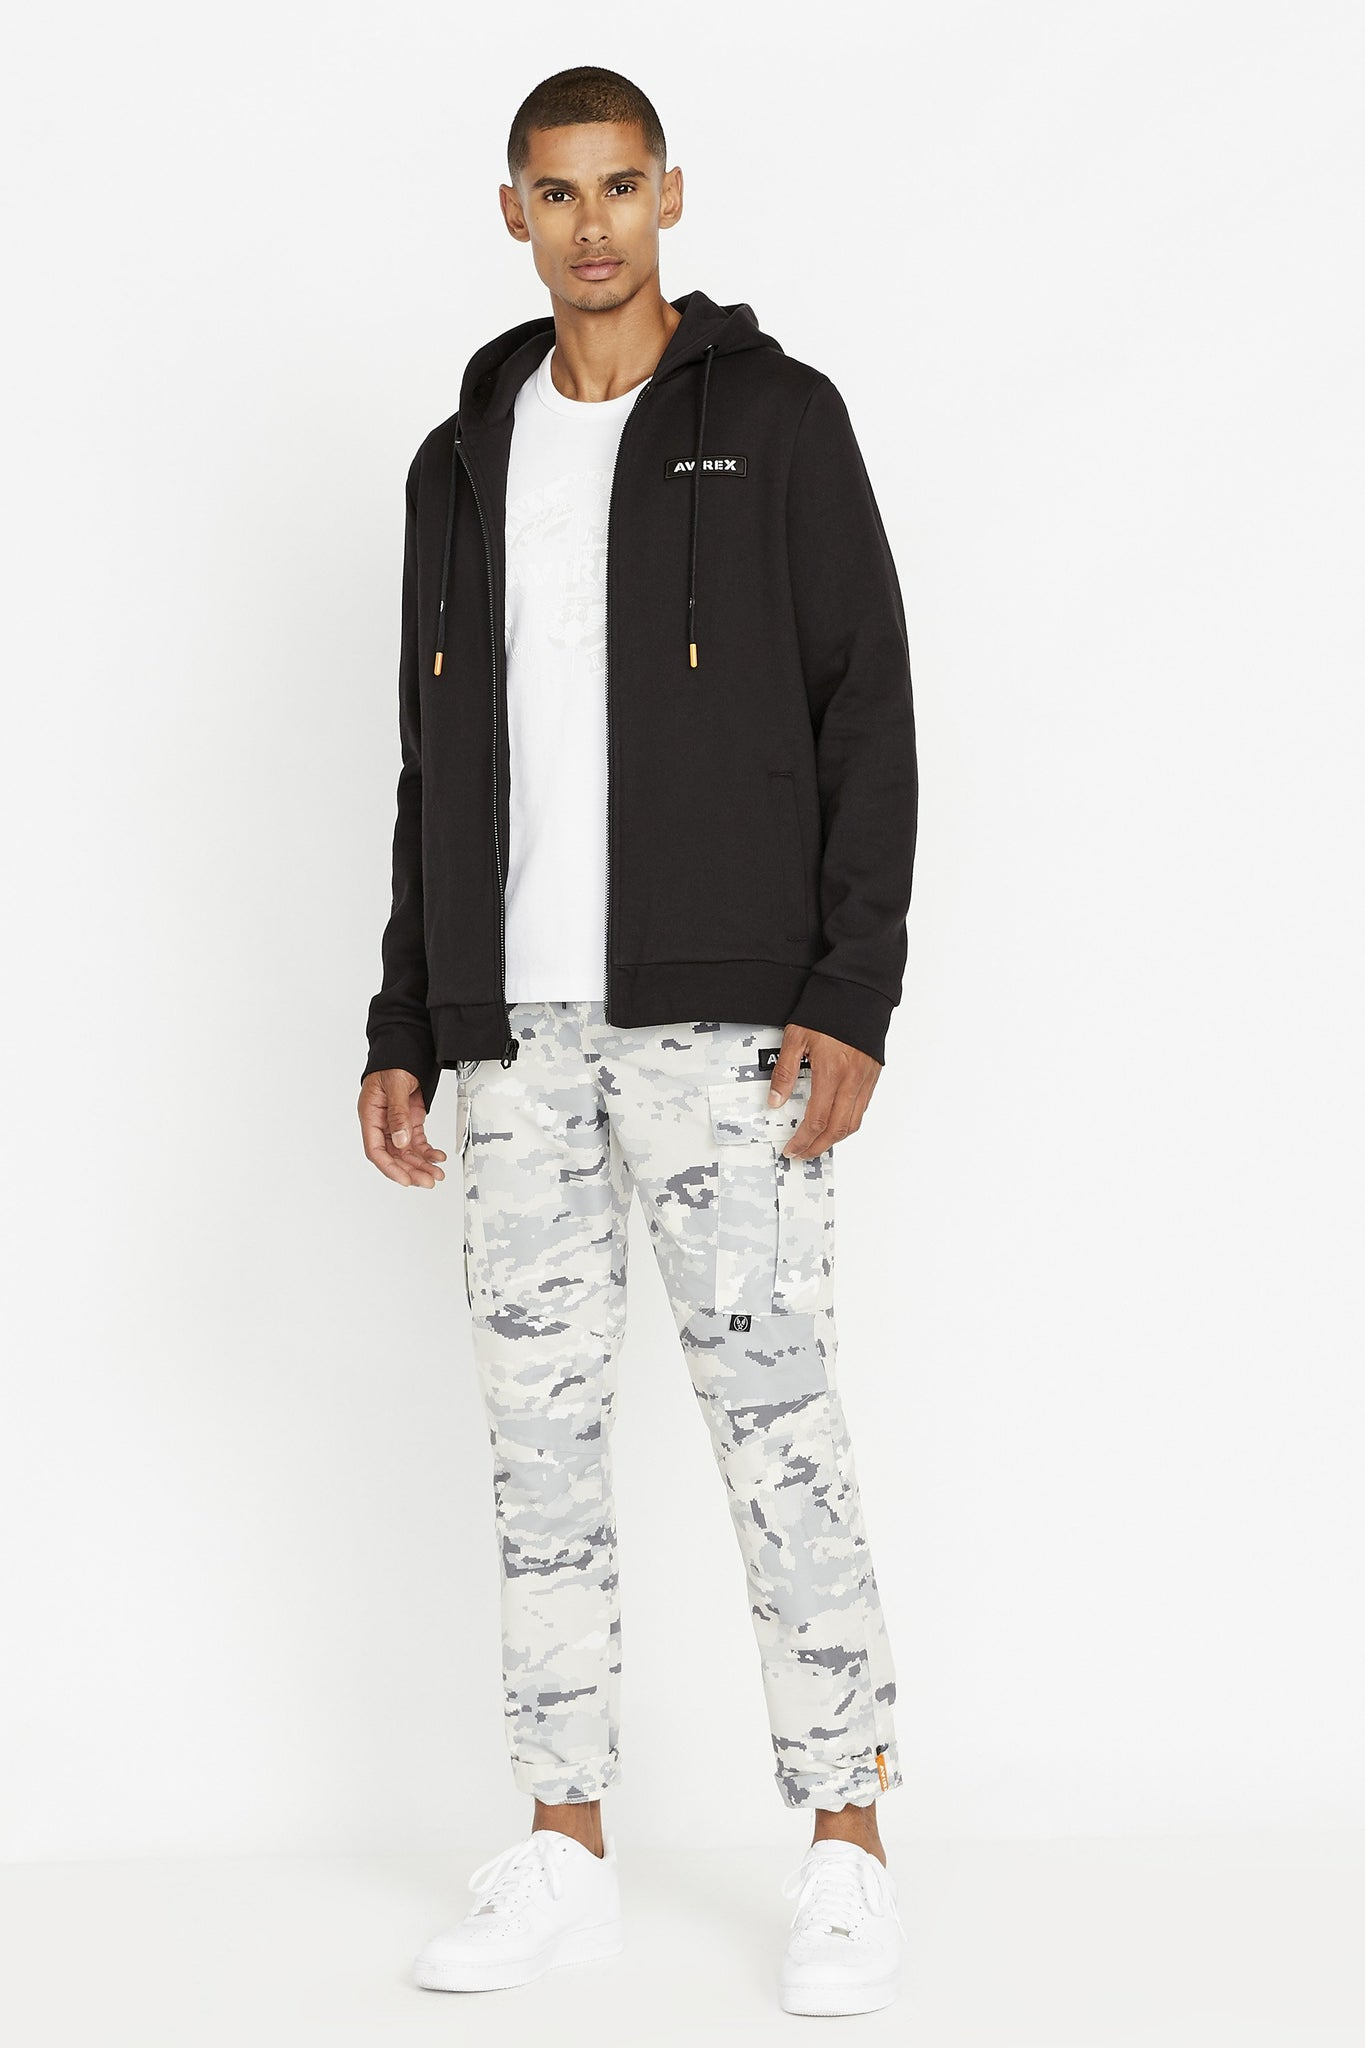 Full view of men wearing a black long sleeve front zip hoodie sweatshirt with Avirex chest patch and white crew neck t-shirt inside and light grey camo print pants